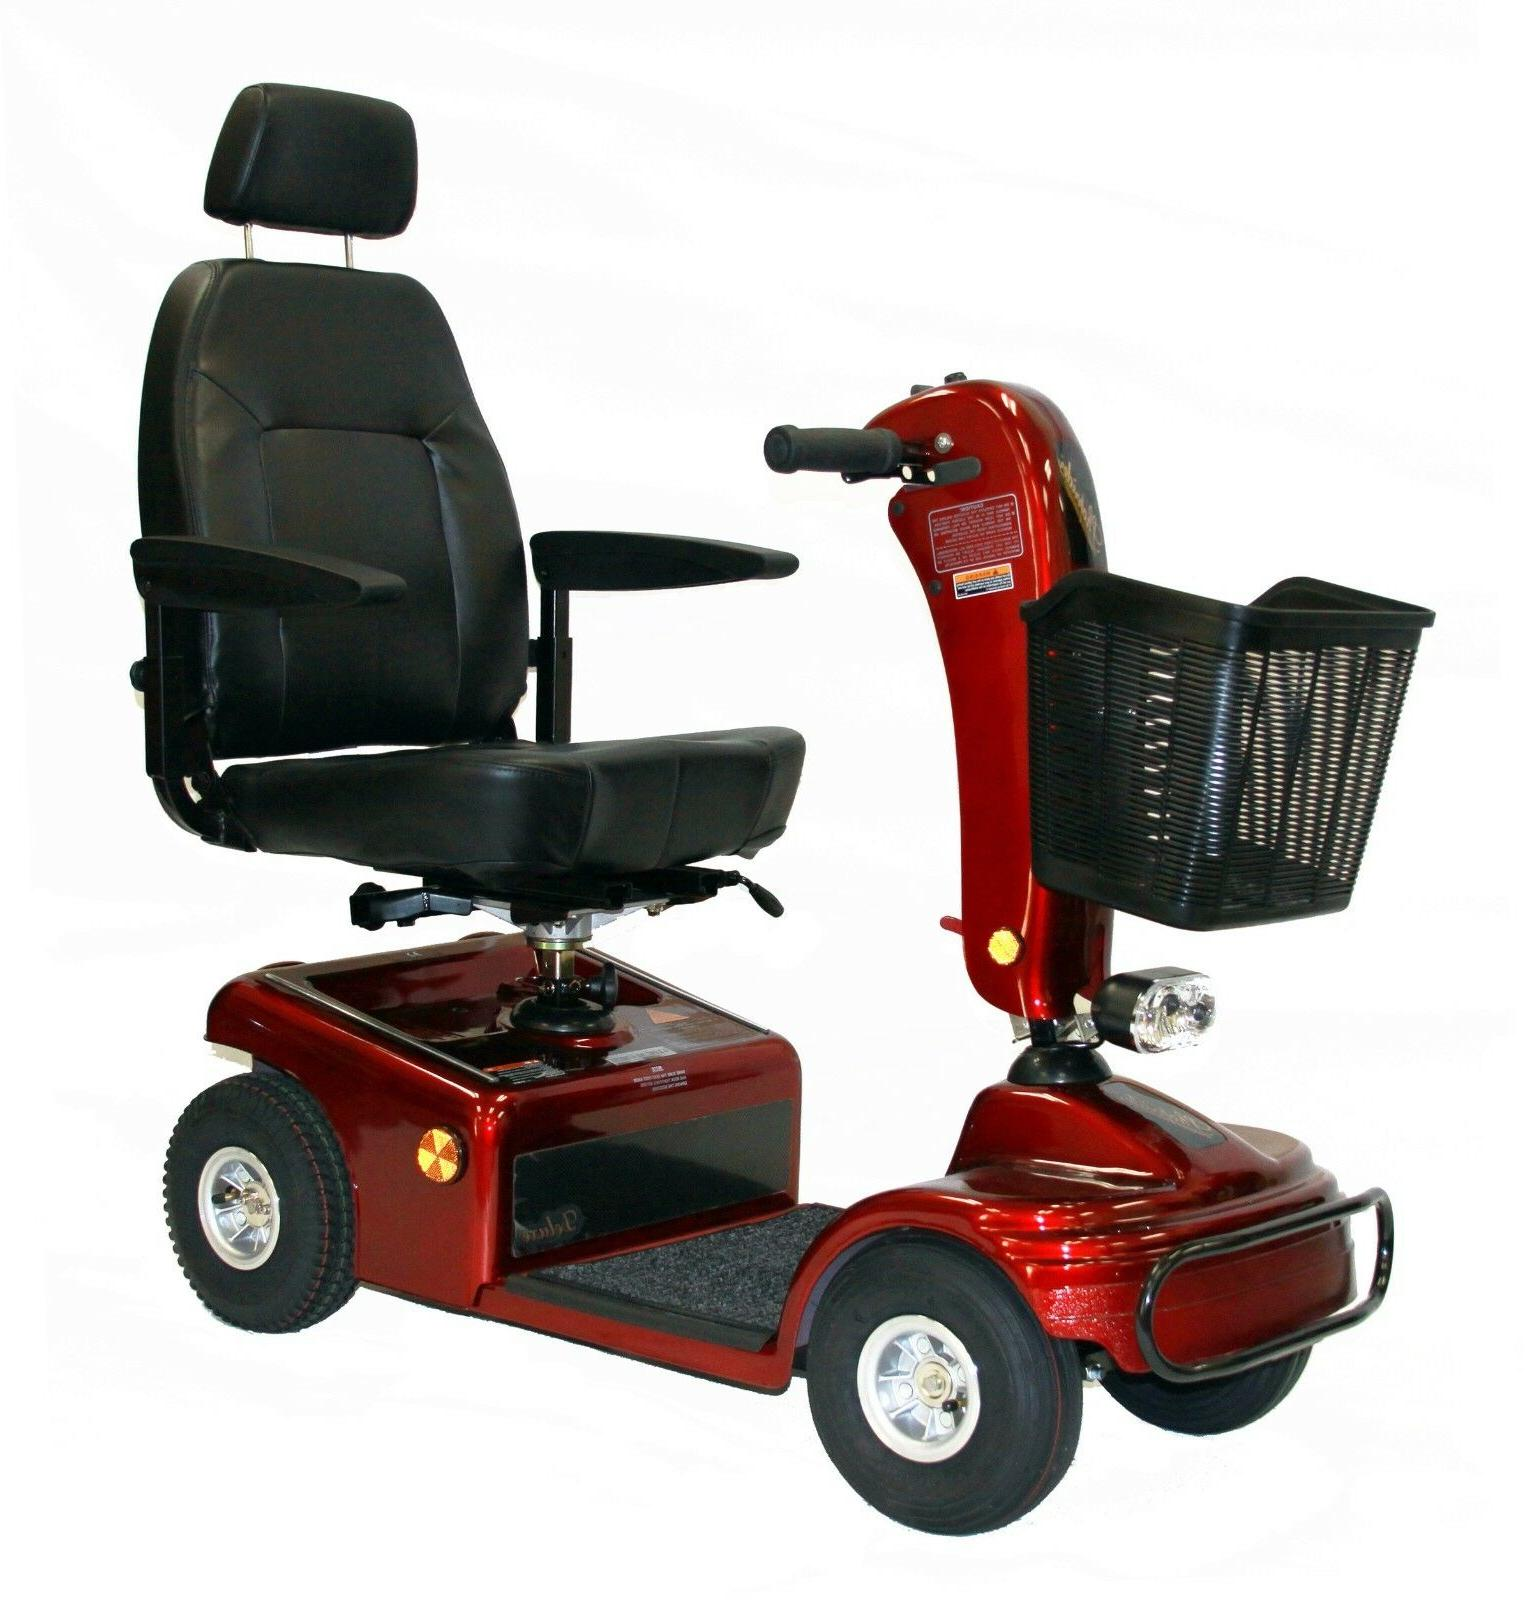 Shoprider Sunrunner Scooter 888B-4 with FREE ACCESSORIES